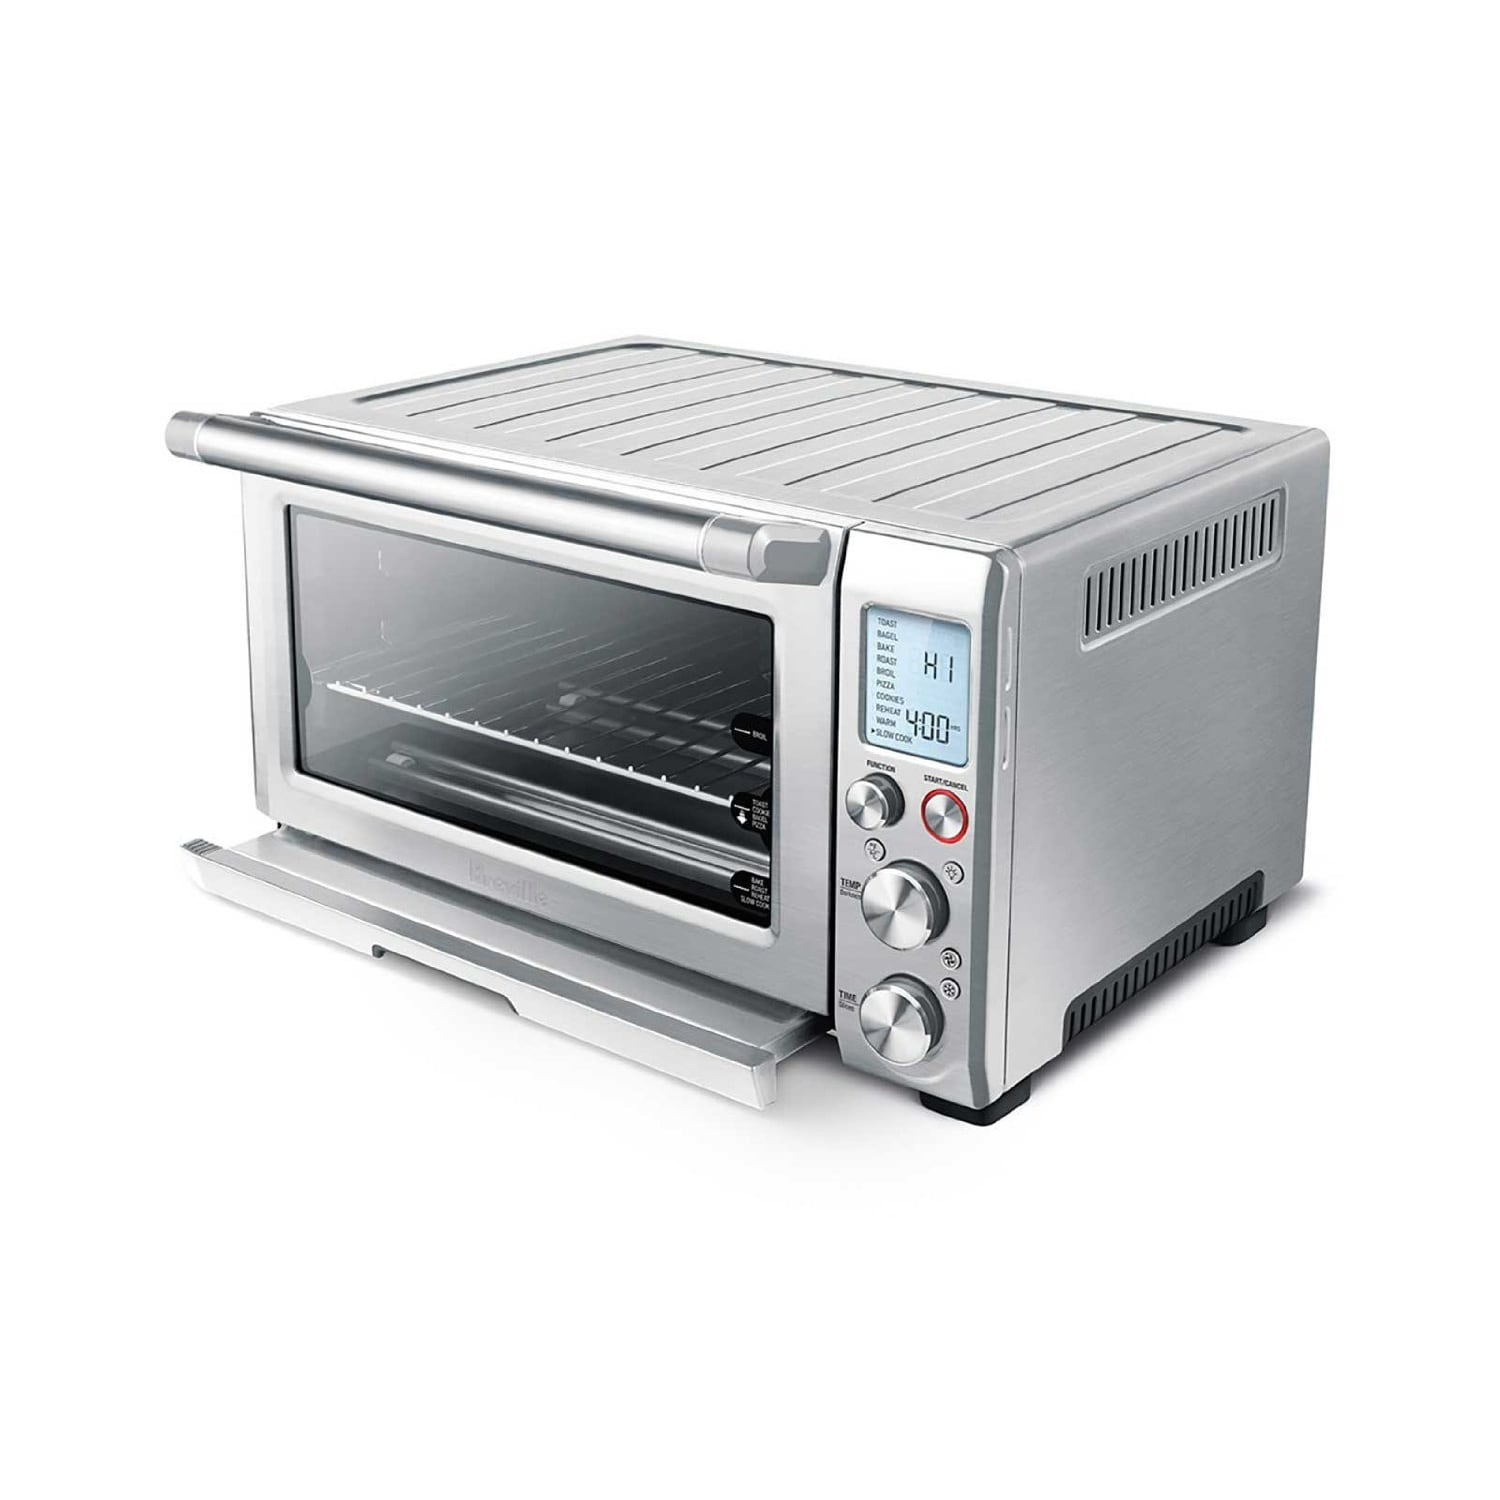 Breville Bov845bss Smart Oven Pro Stainless Steel Digital Convection Toaster Free Shipping Today 10761170